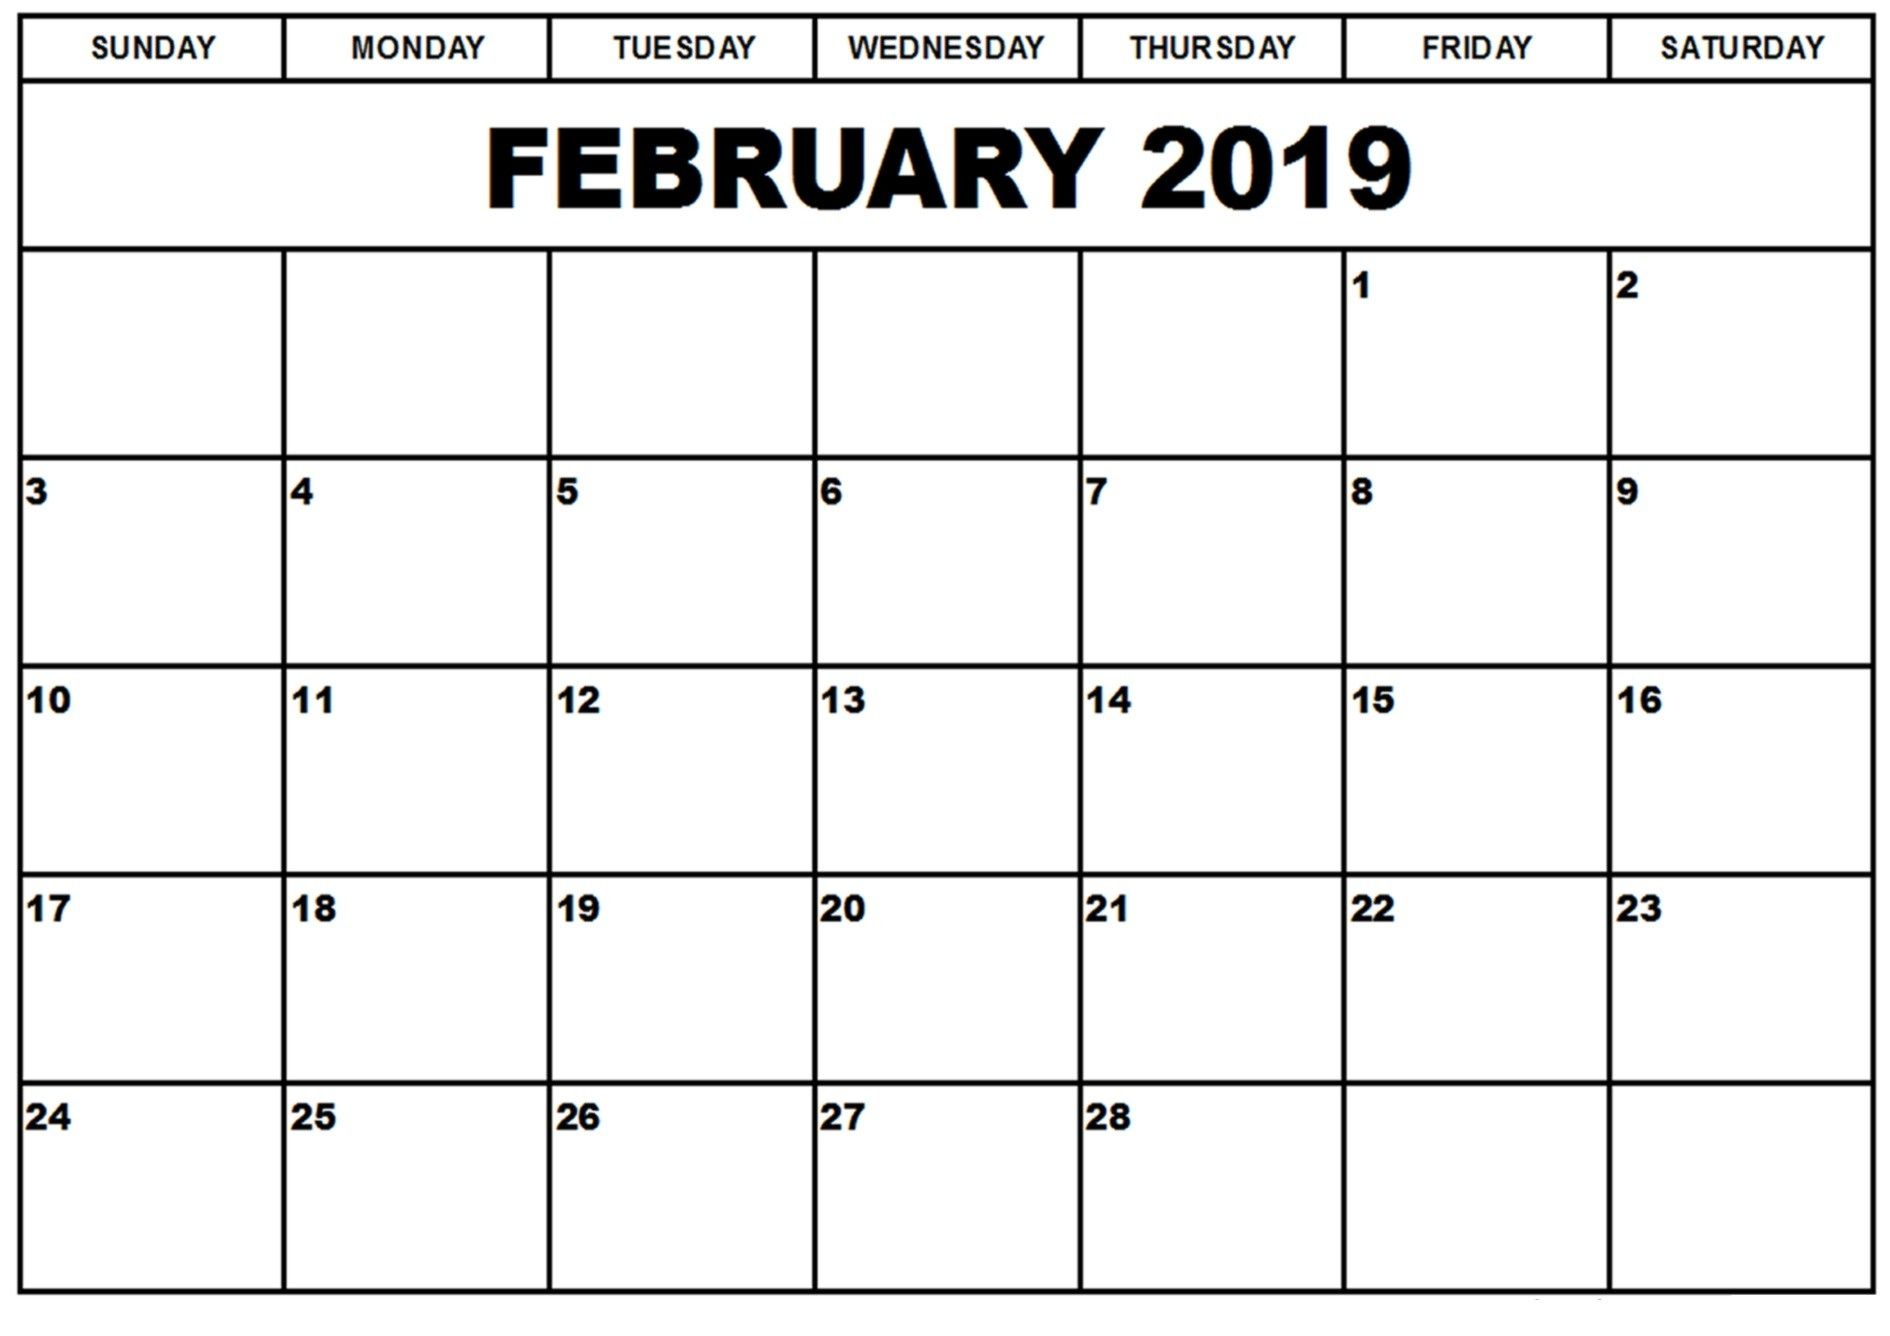 Print Full Page Calendar 2019 February printable calendars save february 2019 calendar printable